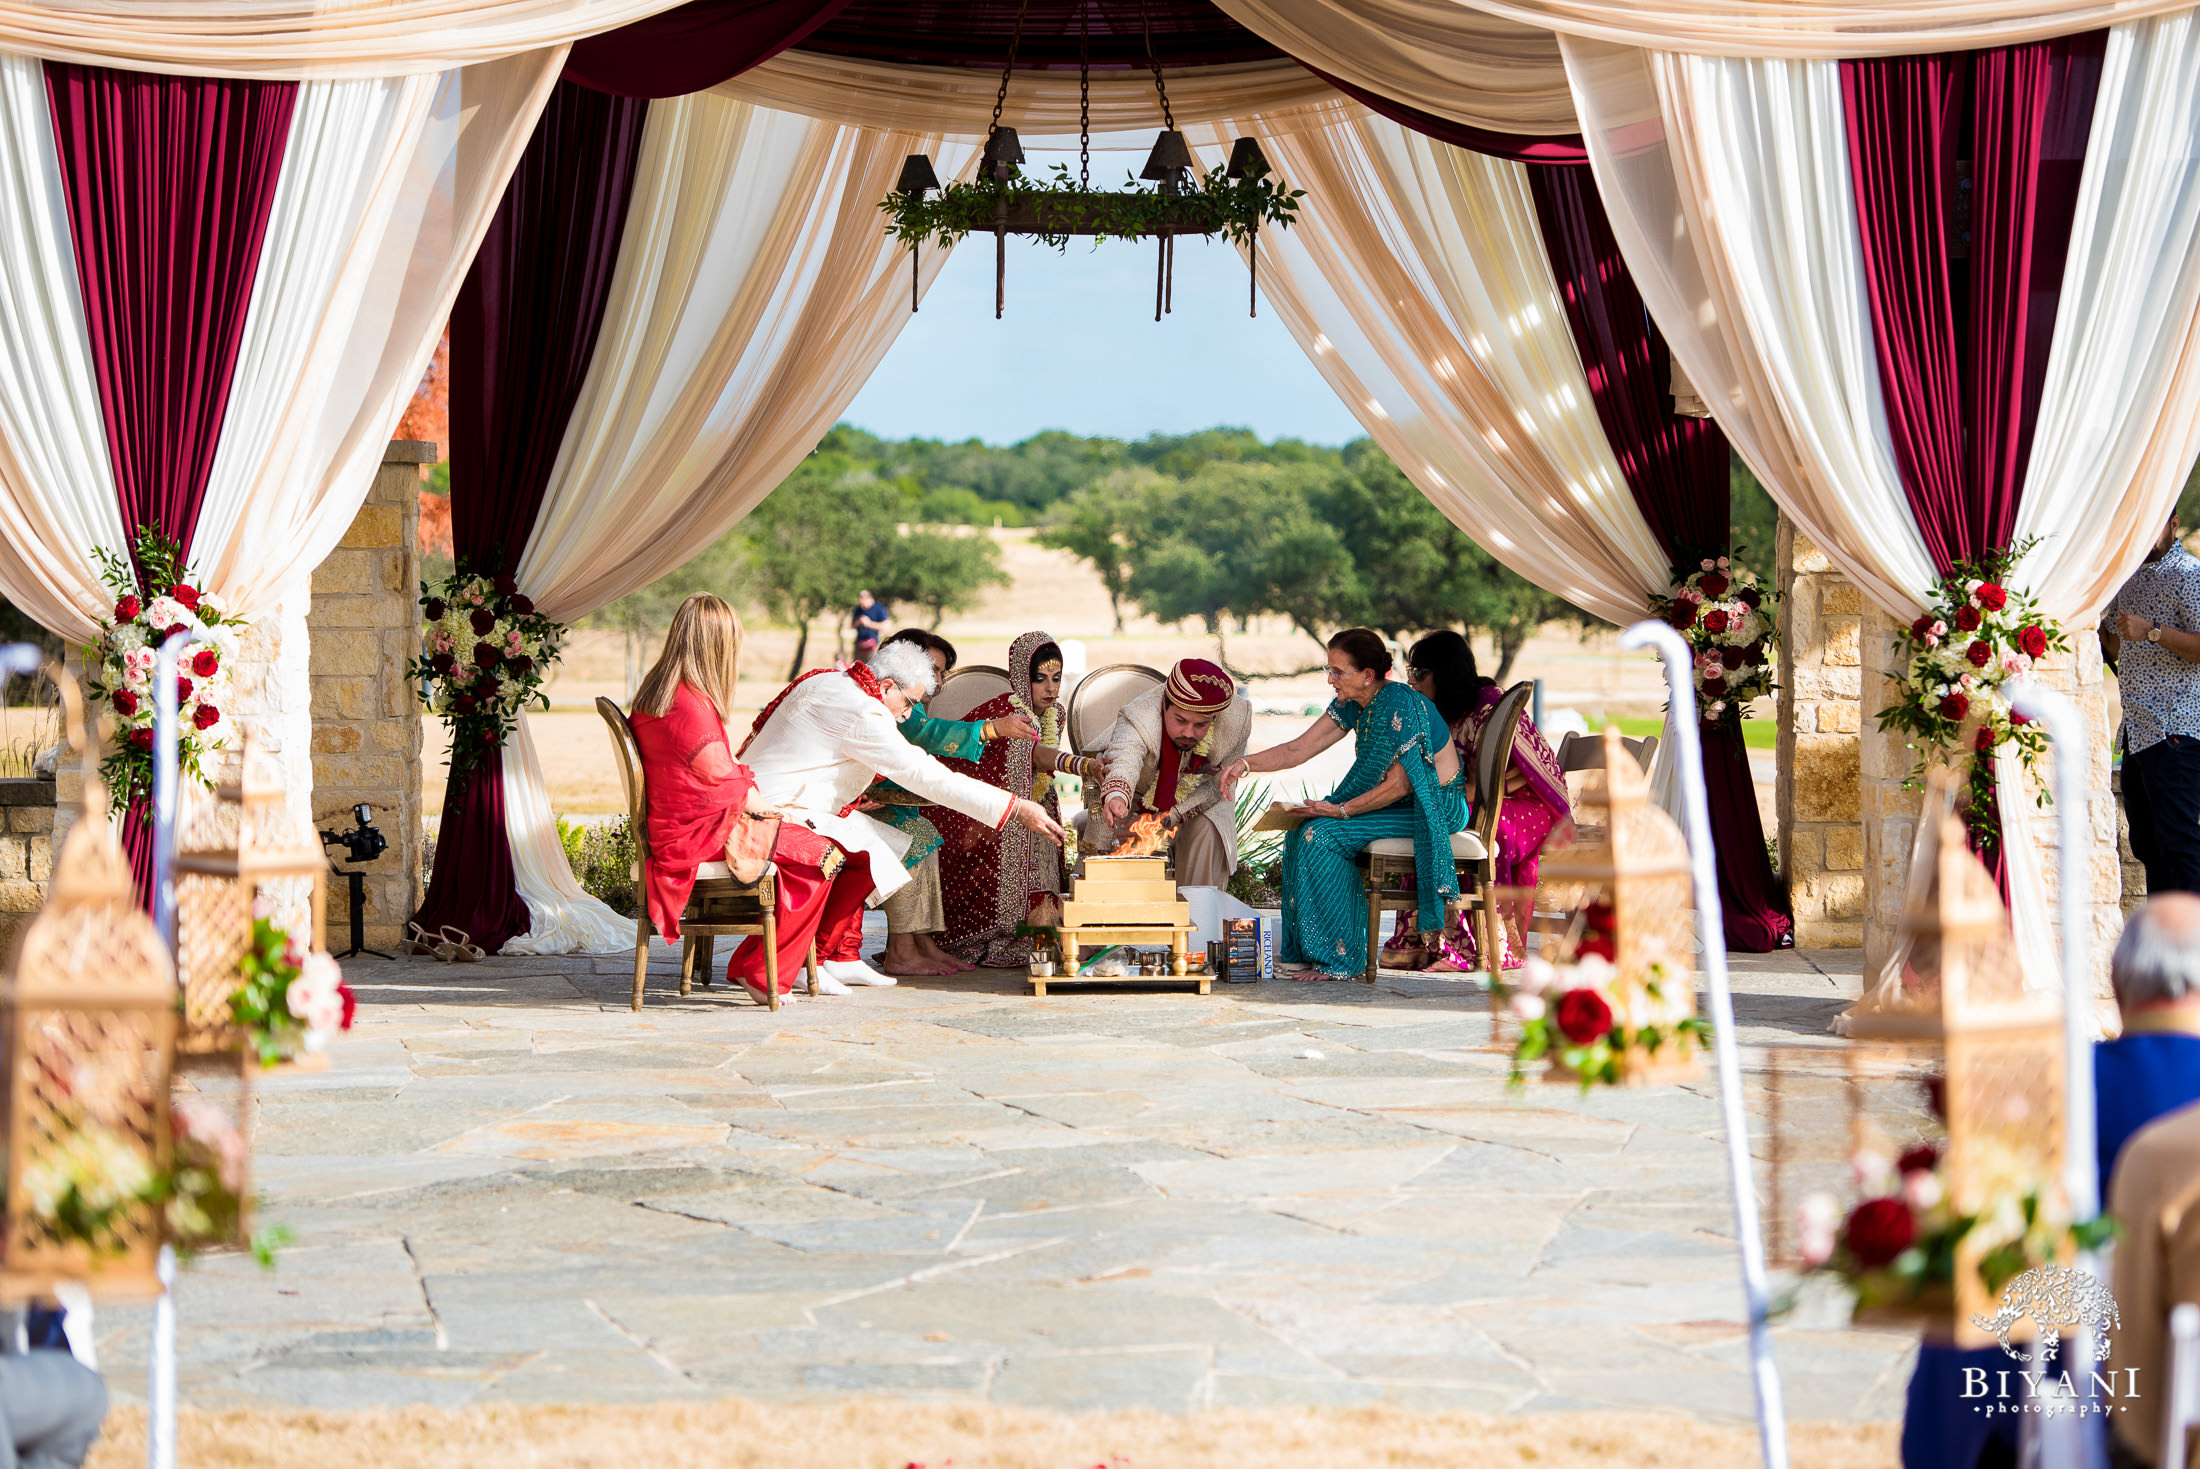 Indian Fusion Wedding ceremony fire outdoors in San Antonio, Tx.